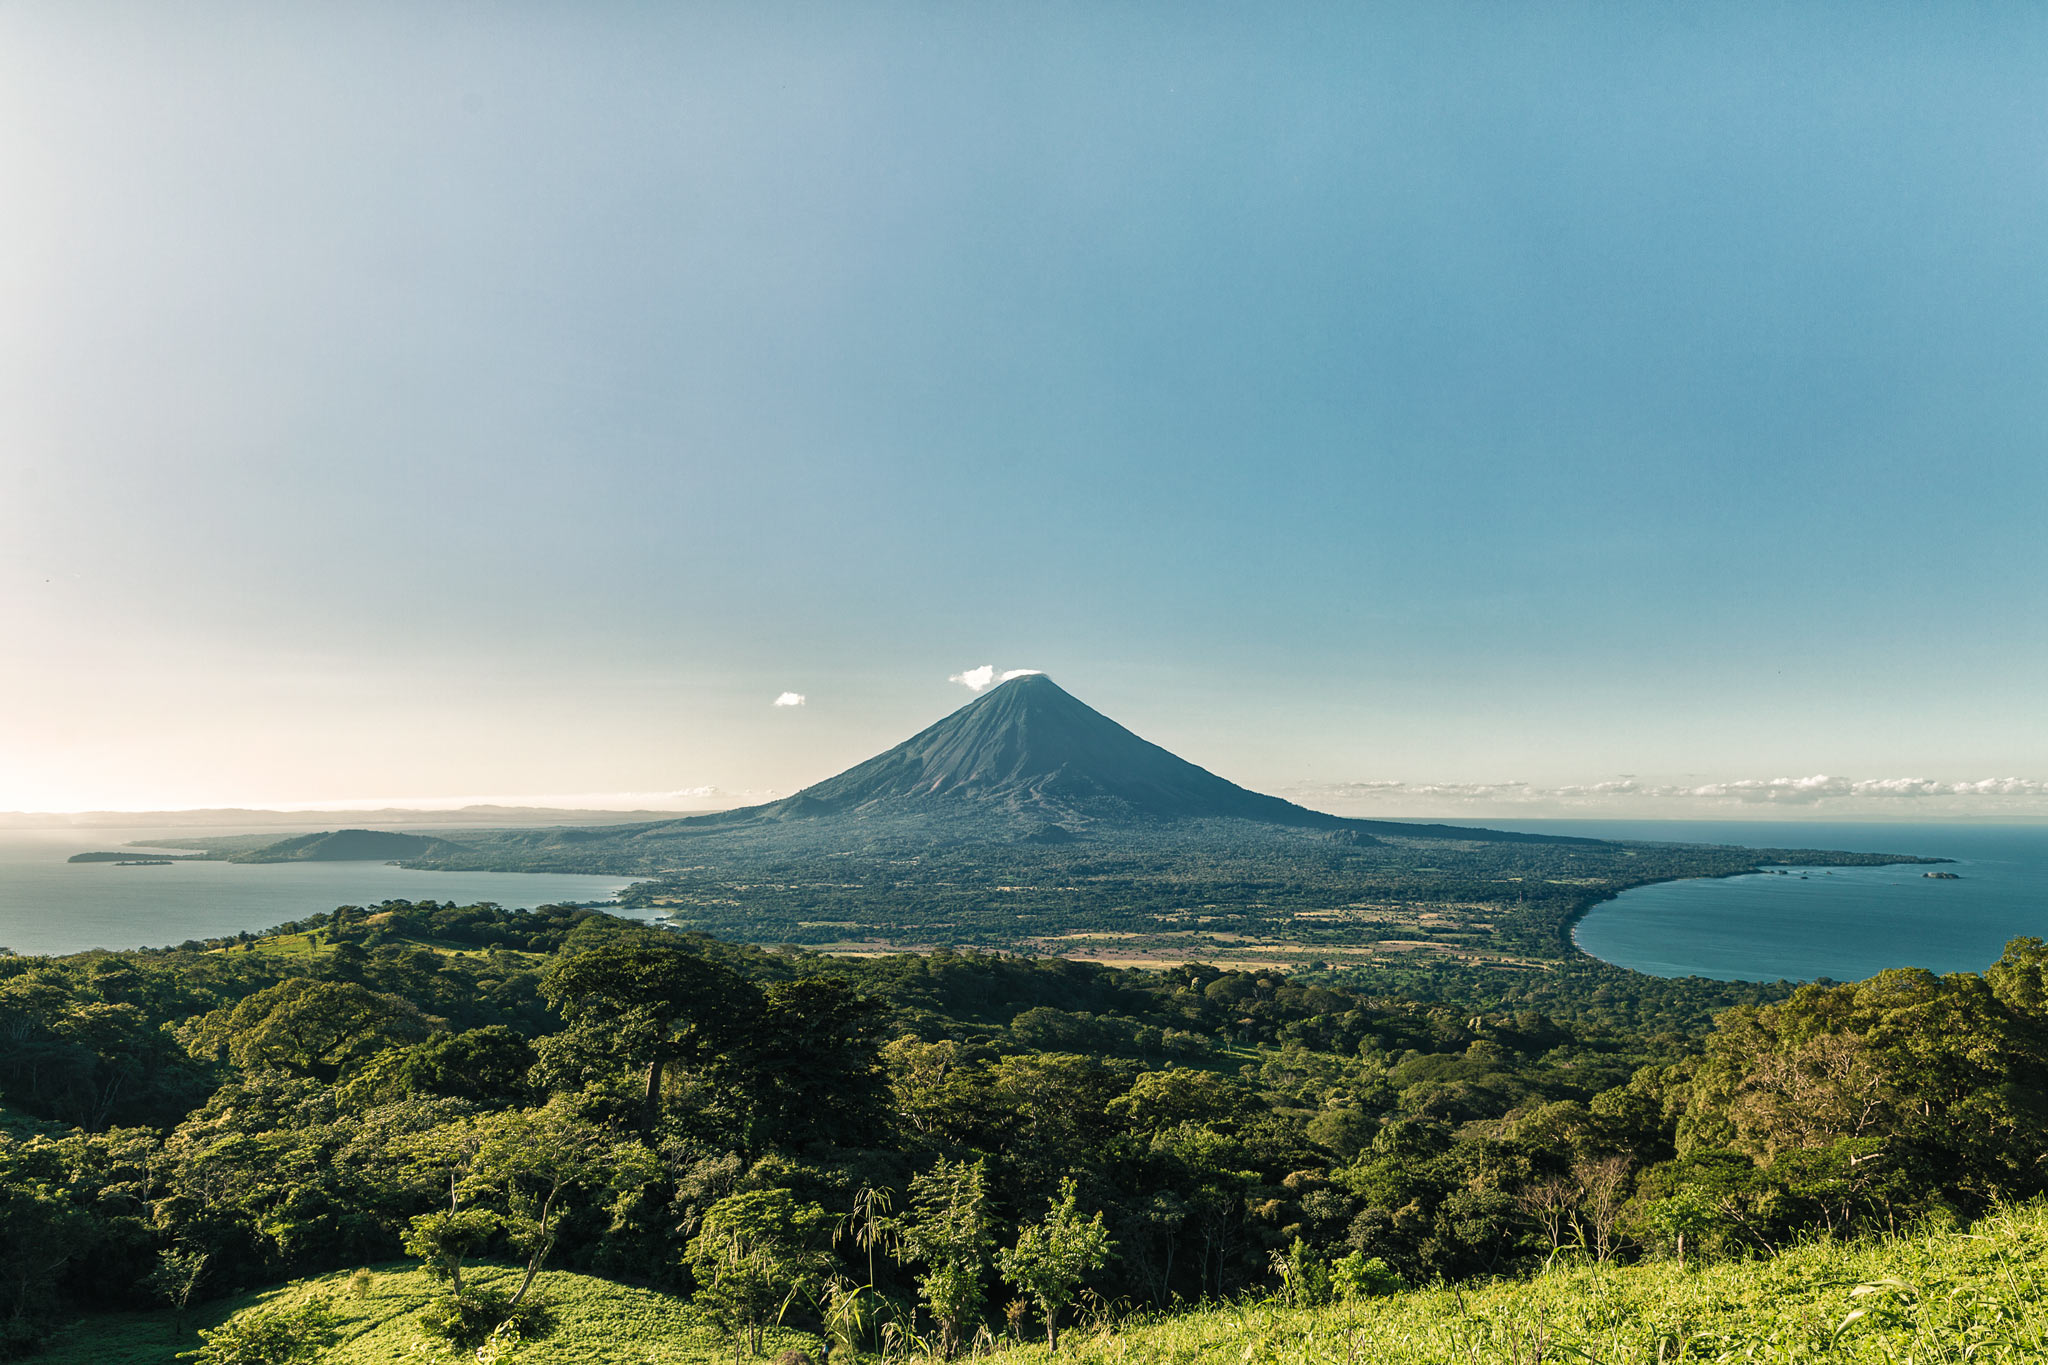 Finally a clear view of Volcán Concepción on Ometepe.